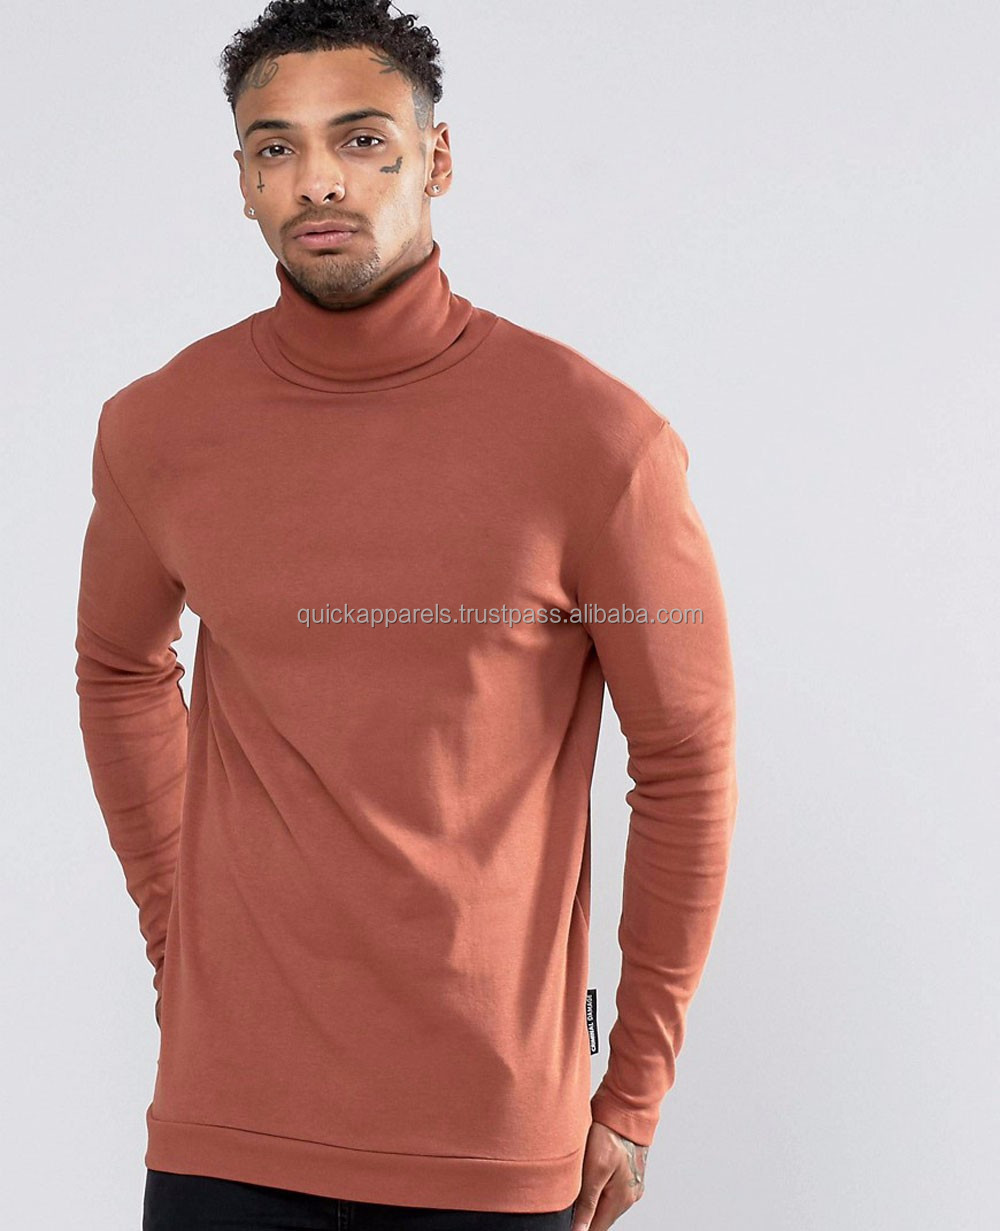 Fashion design long sleeve t shirt men cotton round neck t-shirts cheap t shirt clothes cheap blank t shirt wholesale